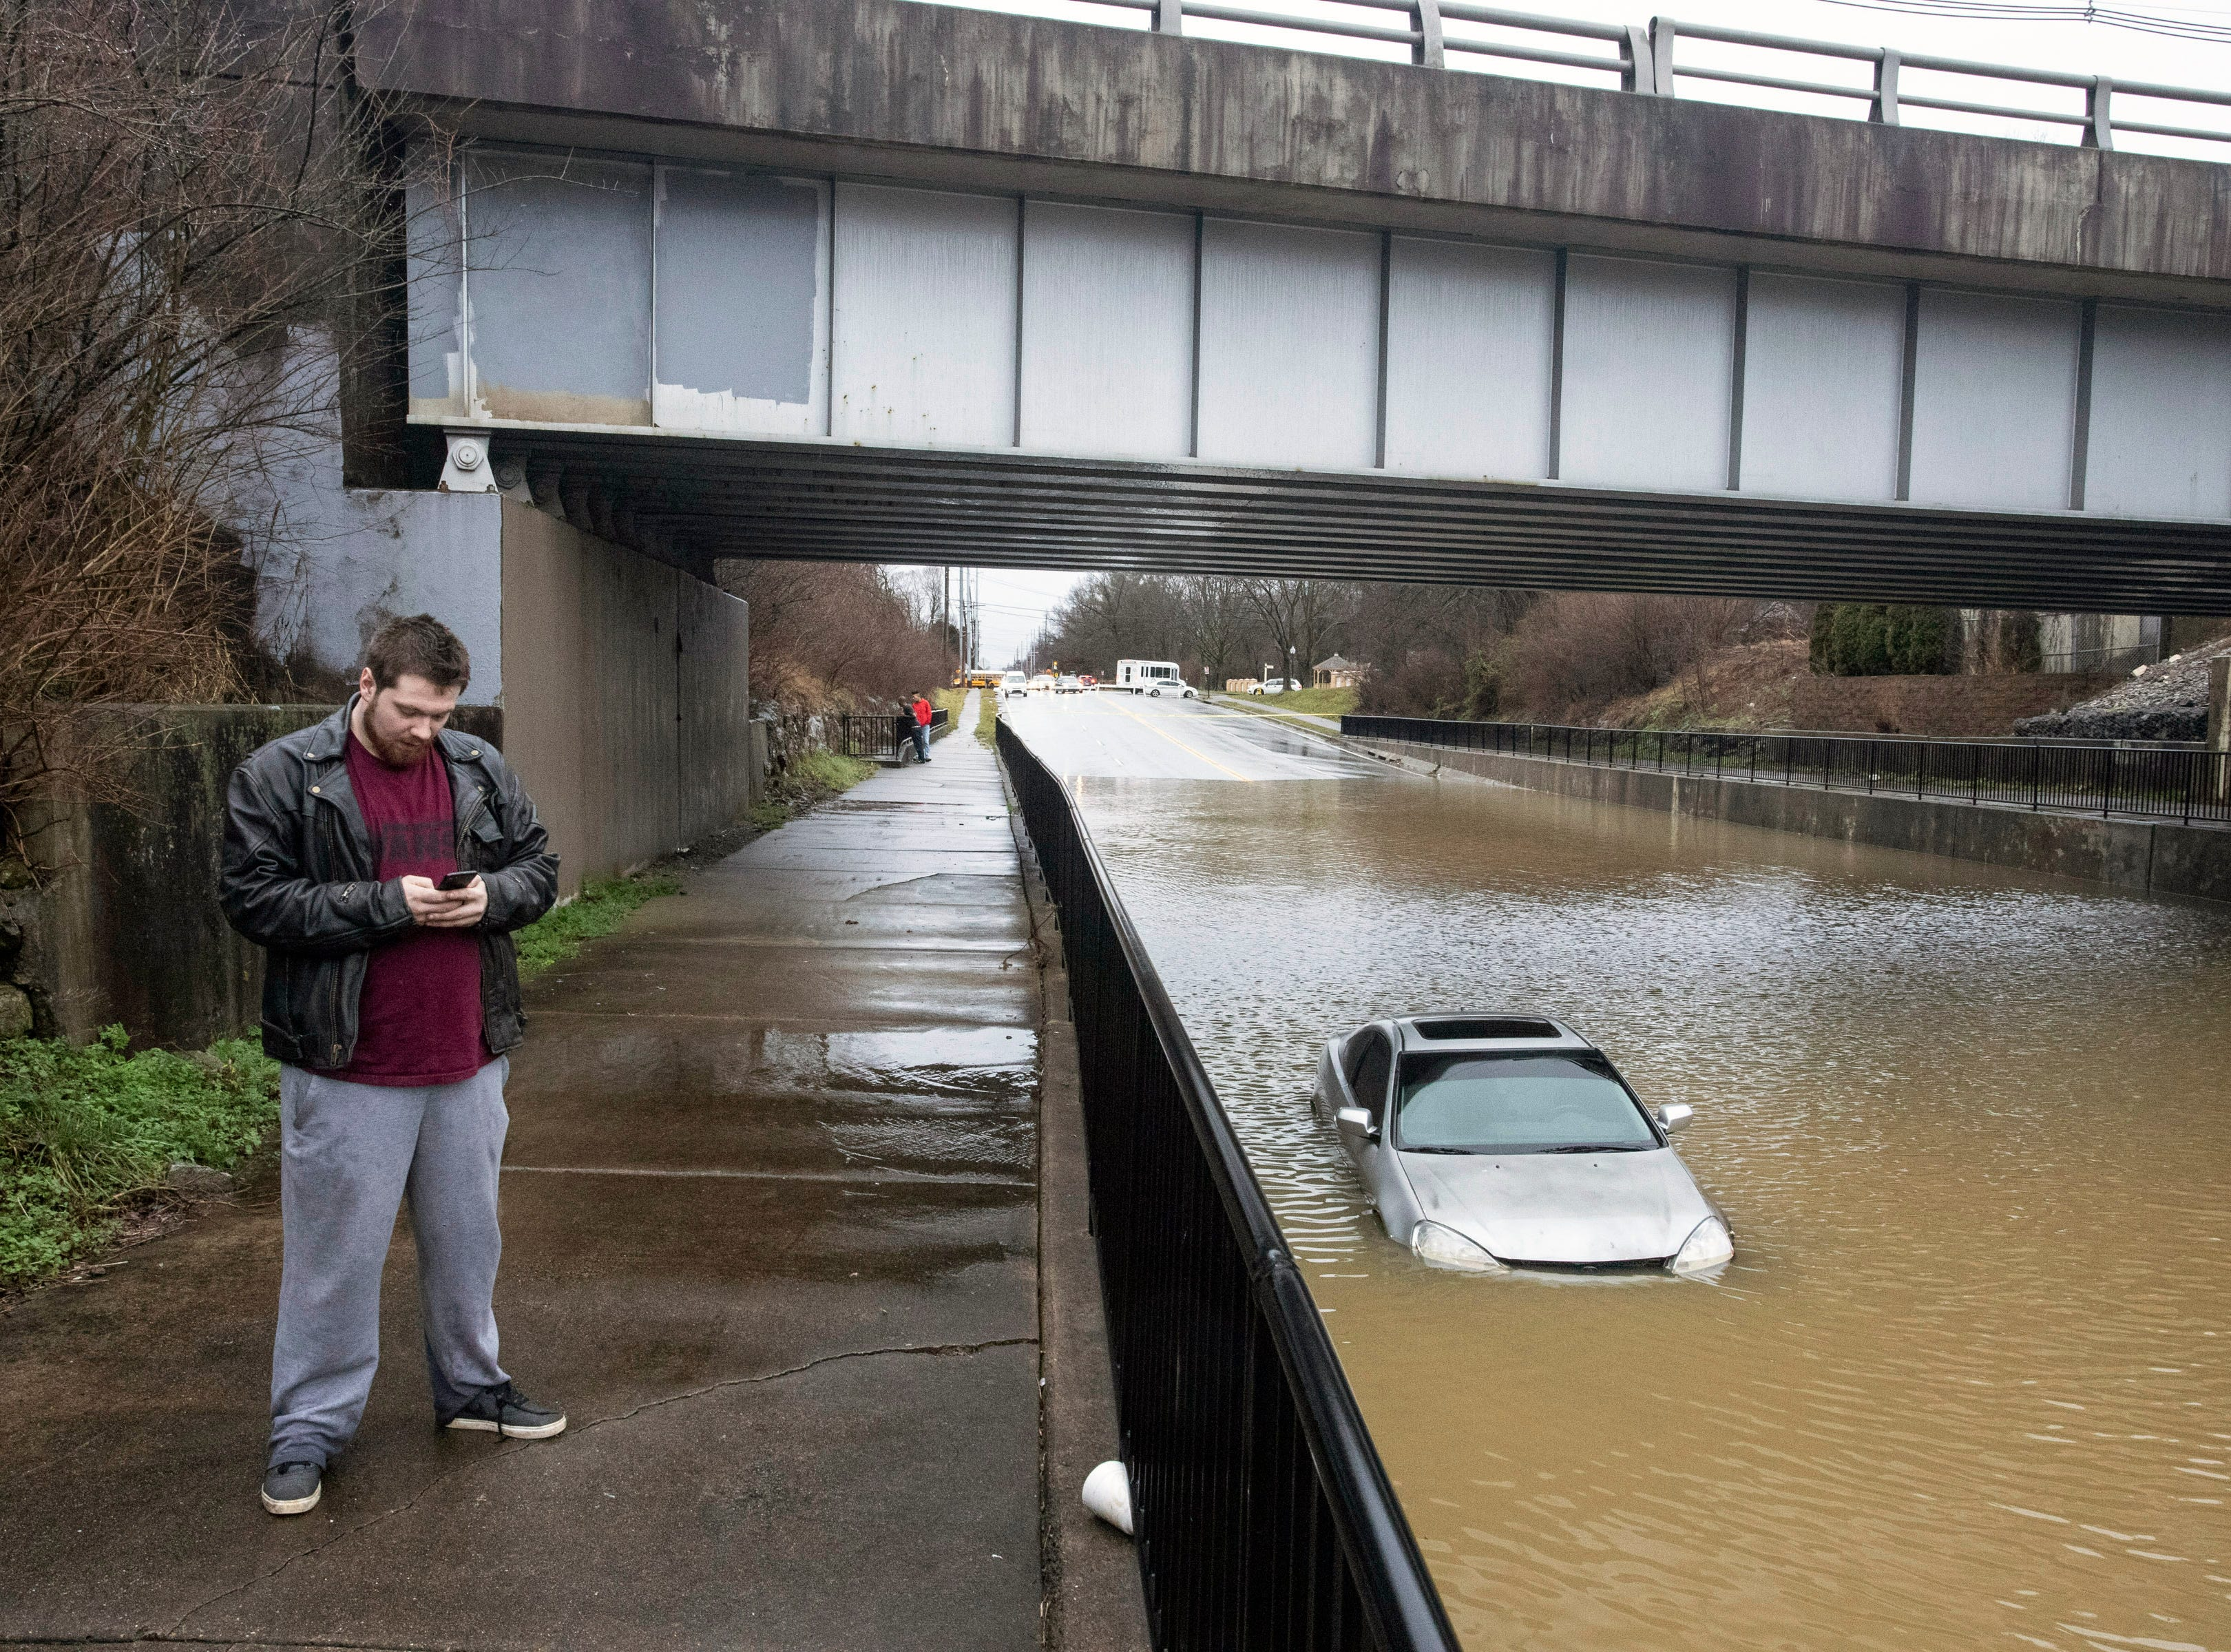 Andrew Chamberlain faced a nightmare situation on Tuesday morning as his vehicle was overcome by rising flood waters near the intersection of Breckenridge Lane and Six Mile Lane. 2/12/19